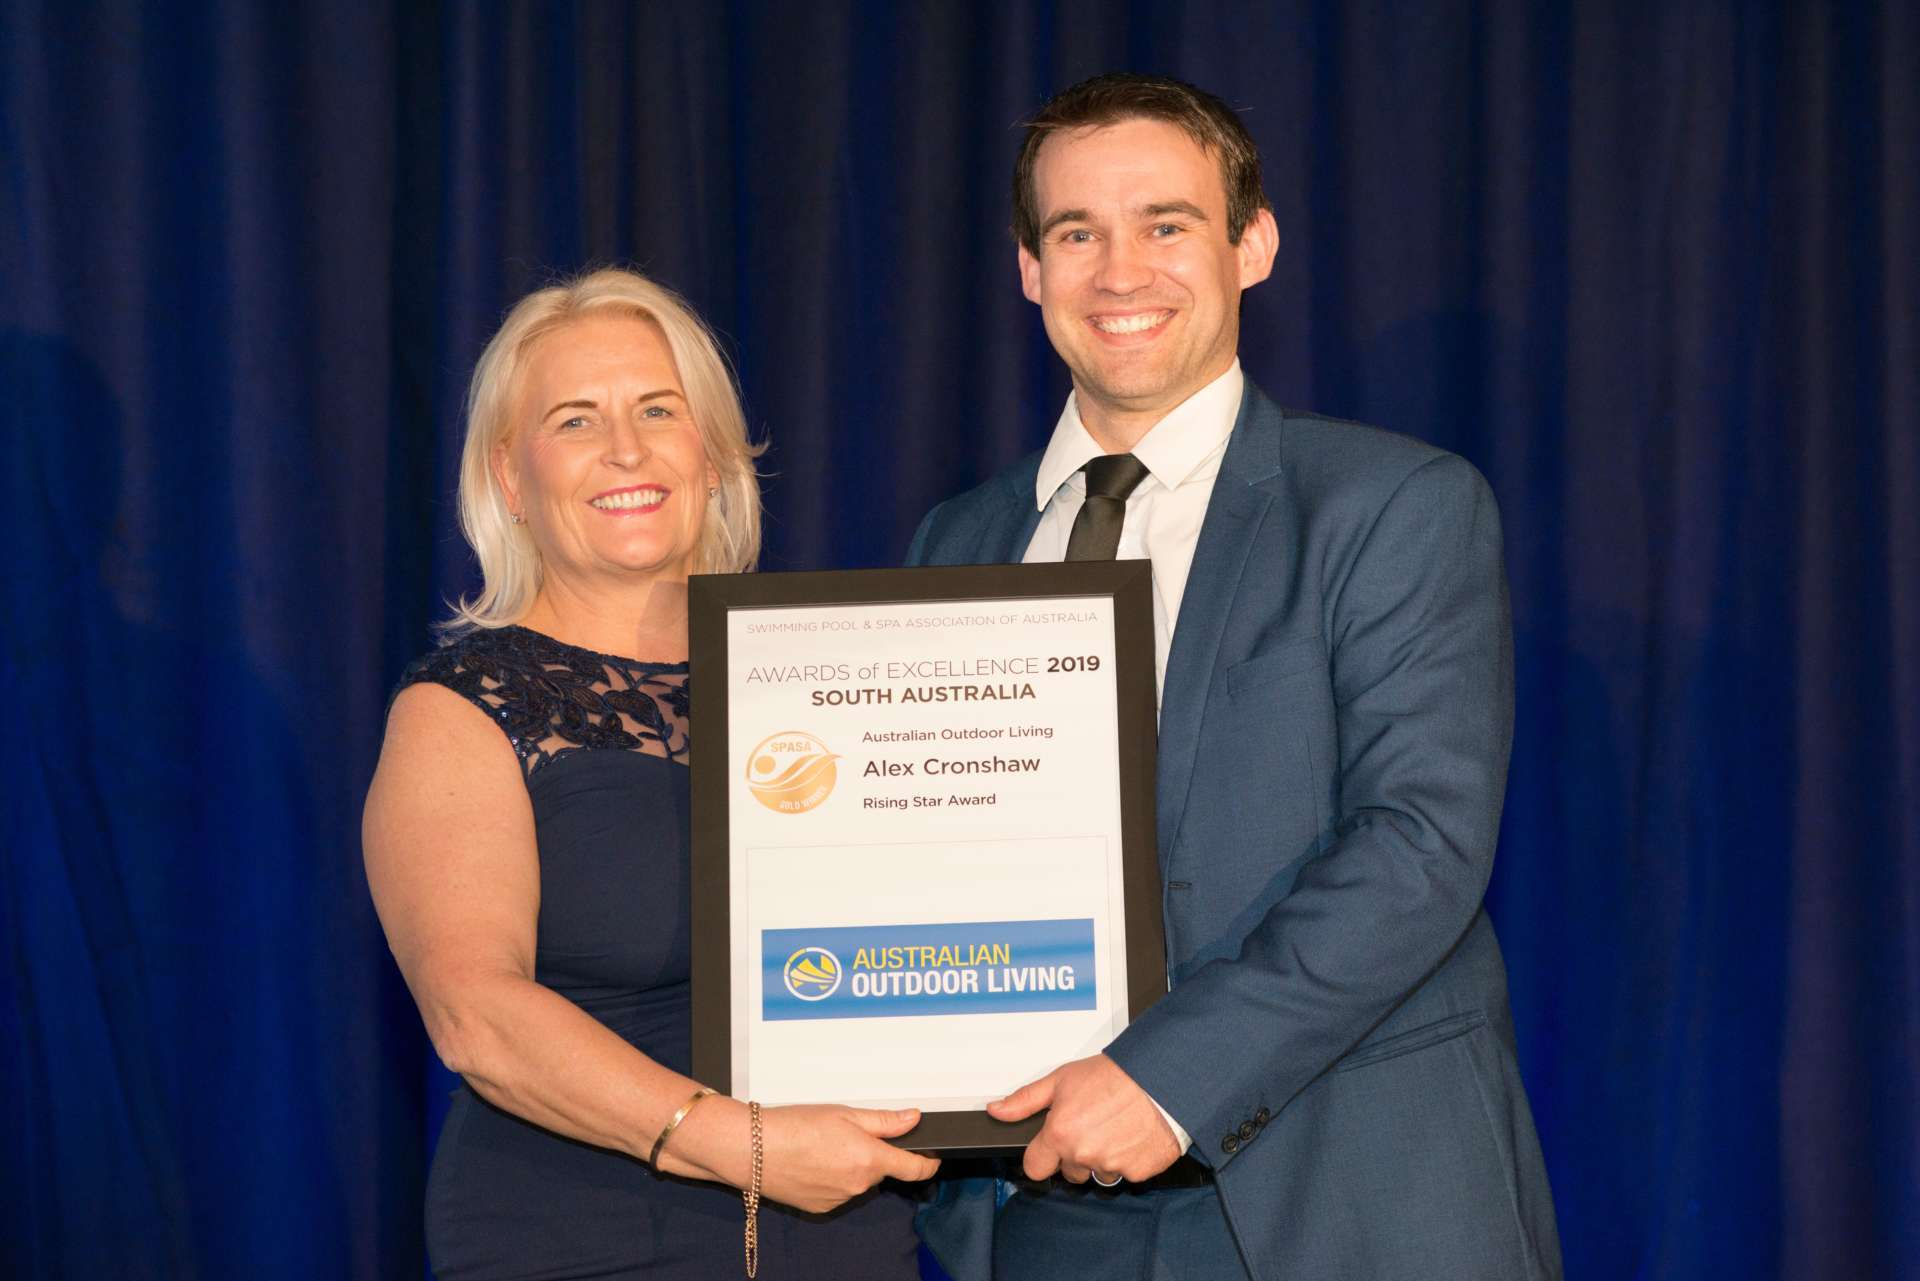 Australian Outdoor Living makes splash at South Australian awards ceremony - Pools Design Consultant Alex Cronshaw received the Rising Star Award, Australian Outdoor Living.